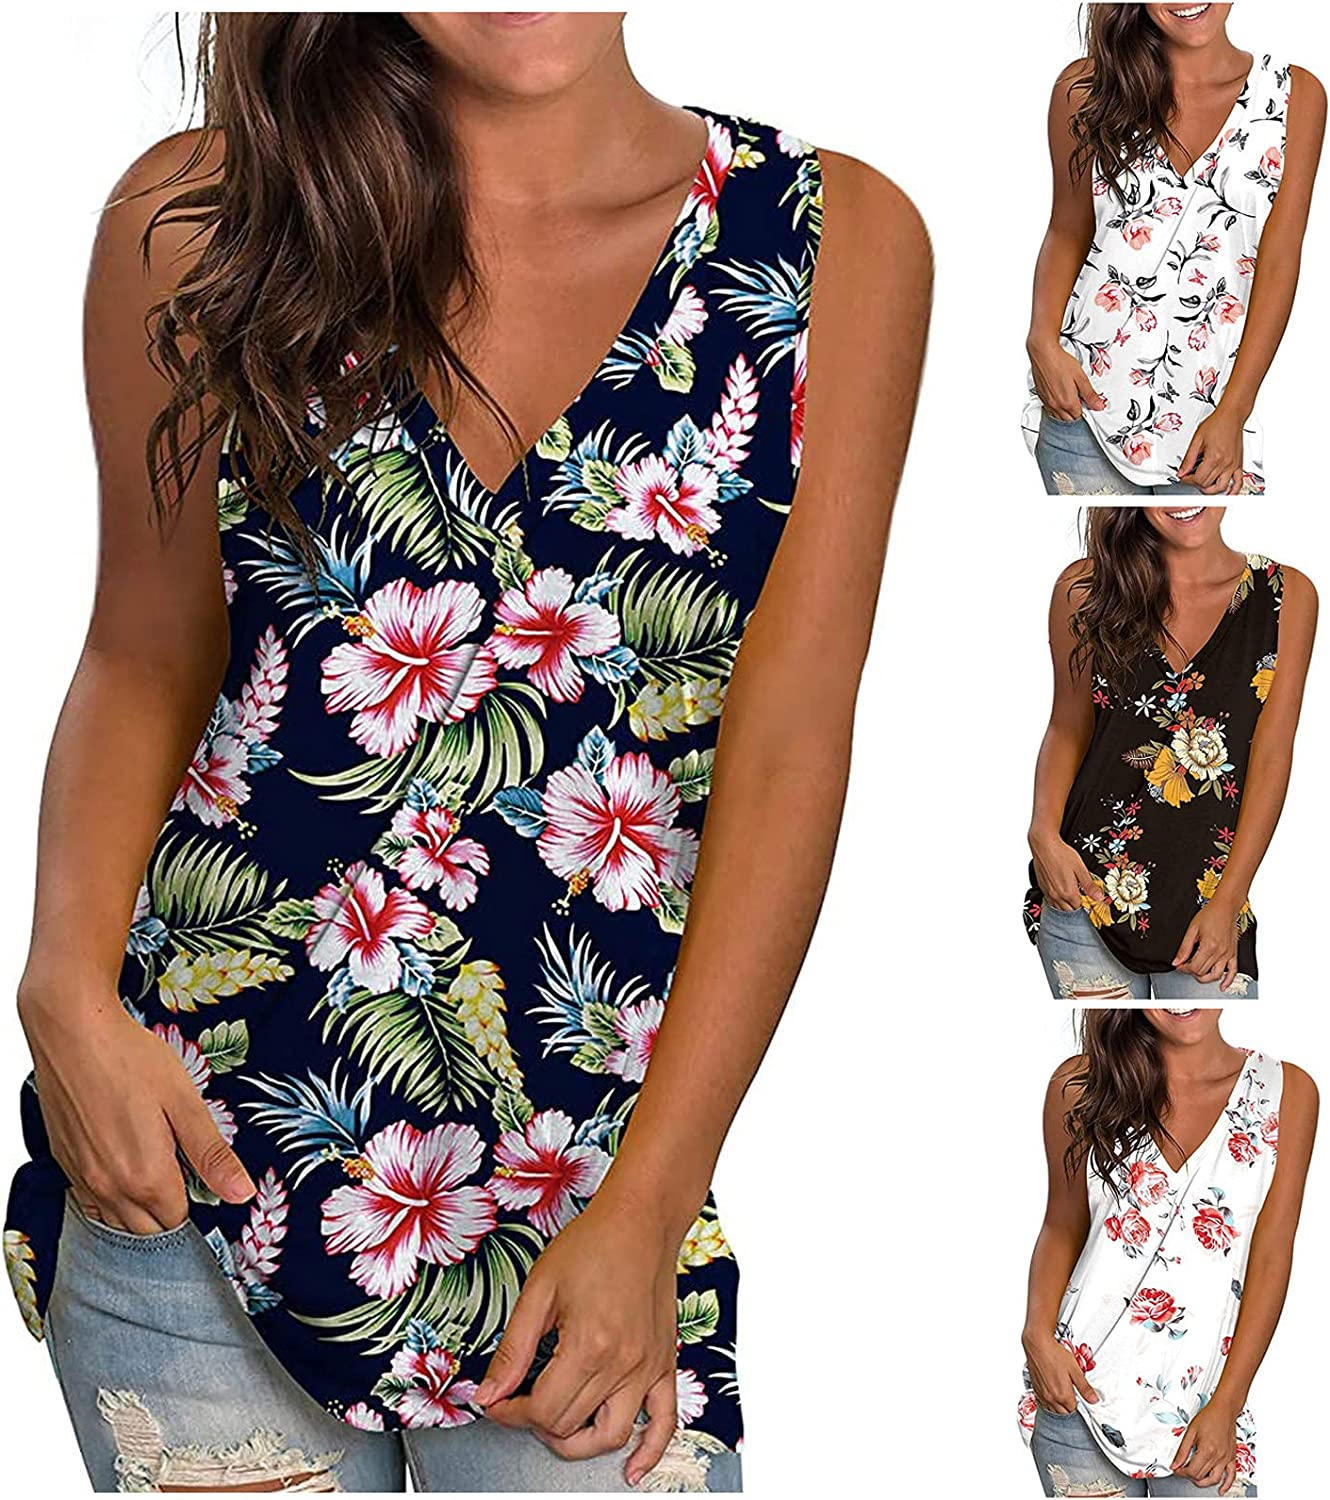 Summer Tops for Women,Womens Floral Printed Cute Summer Tops Loose Fit Plus Size Casual T-Shirts